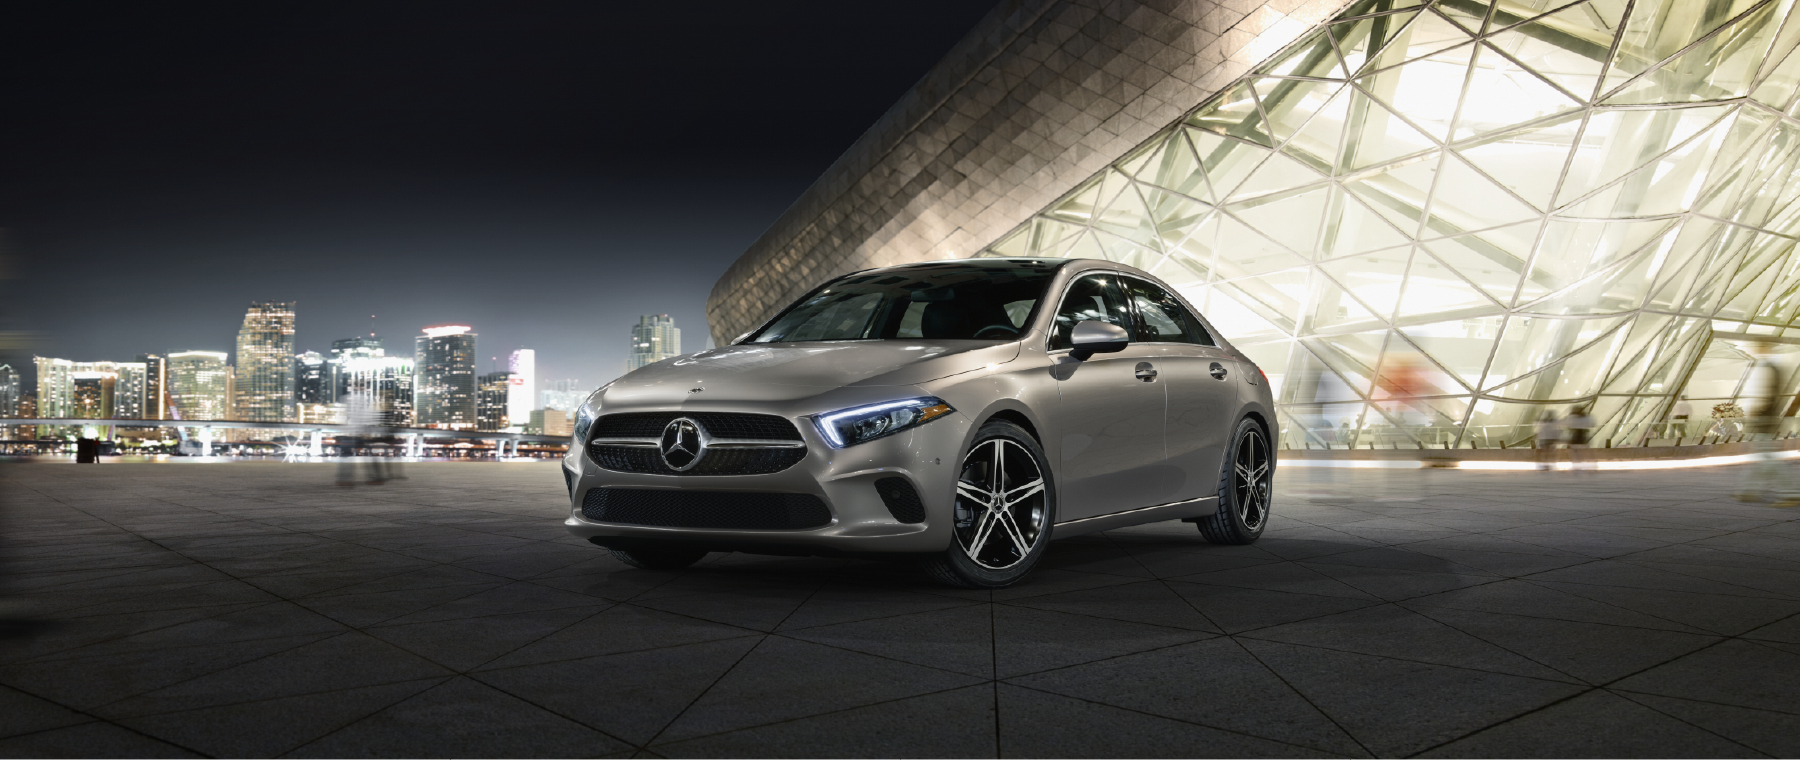 Mercedes-Benz of Charleston | New & Pre-Owned Luxury Dealer in Charleston, WV